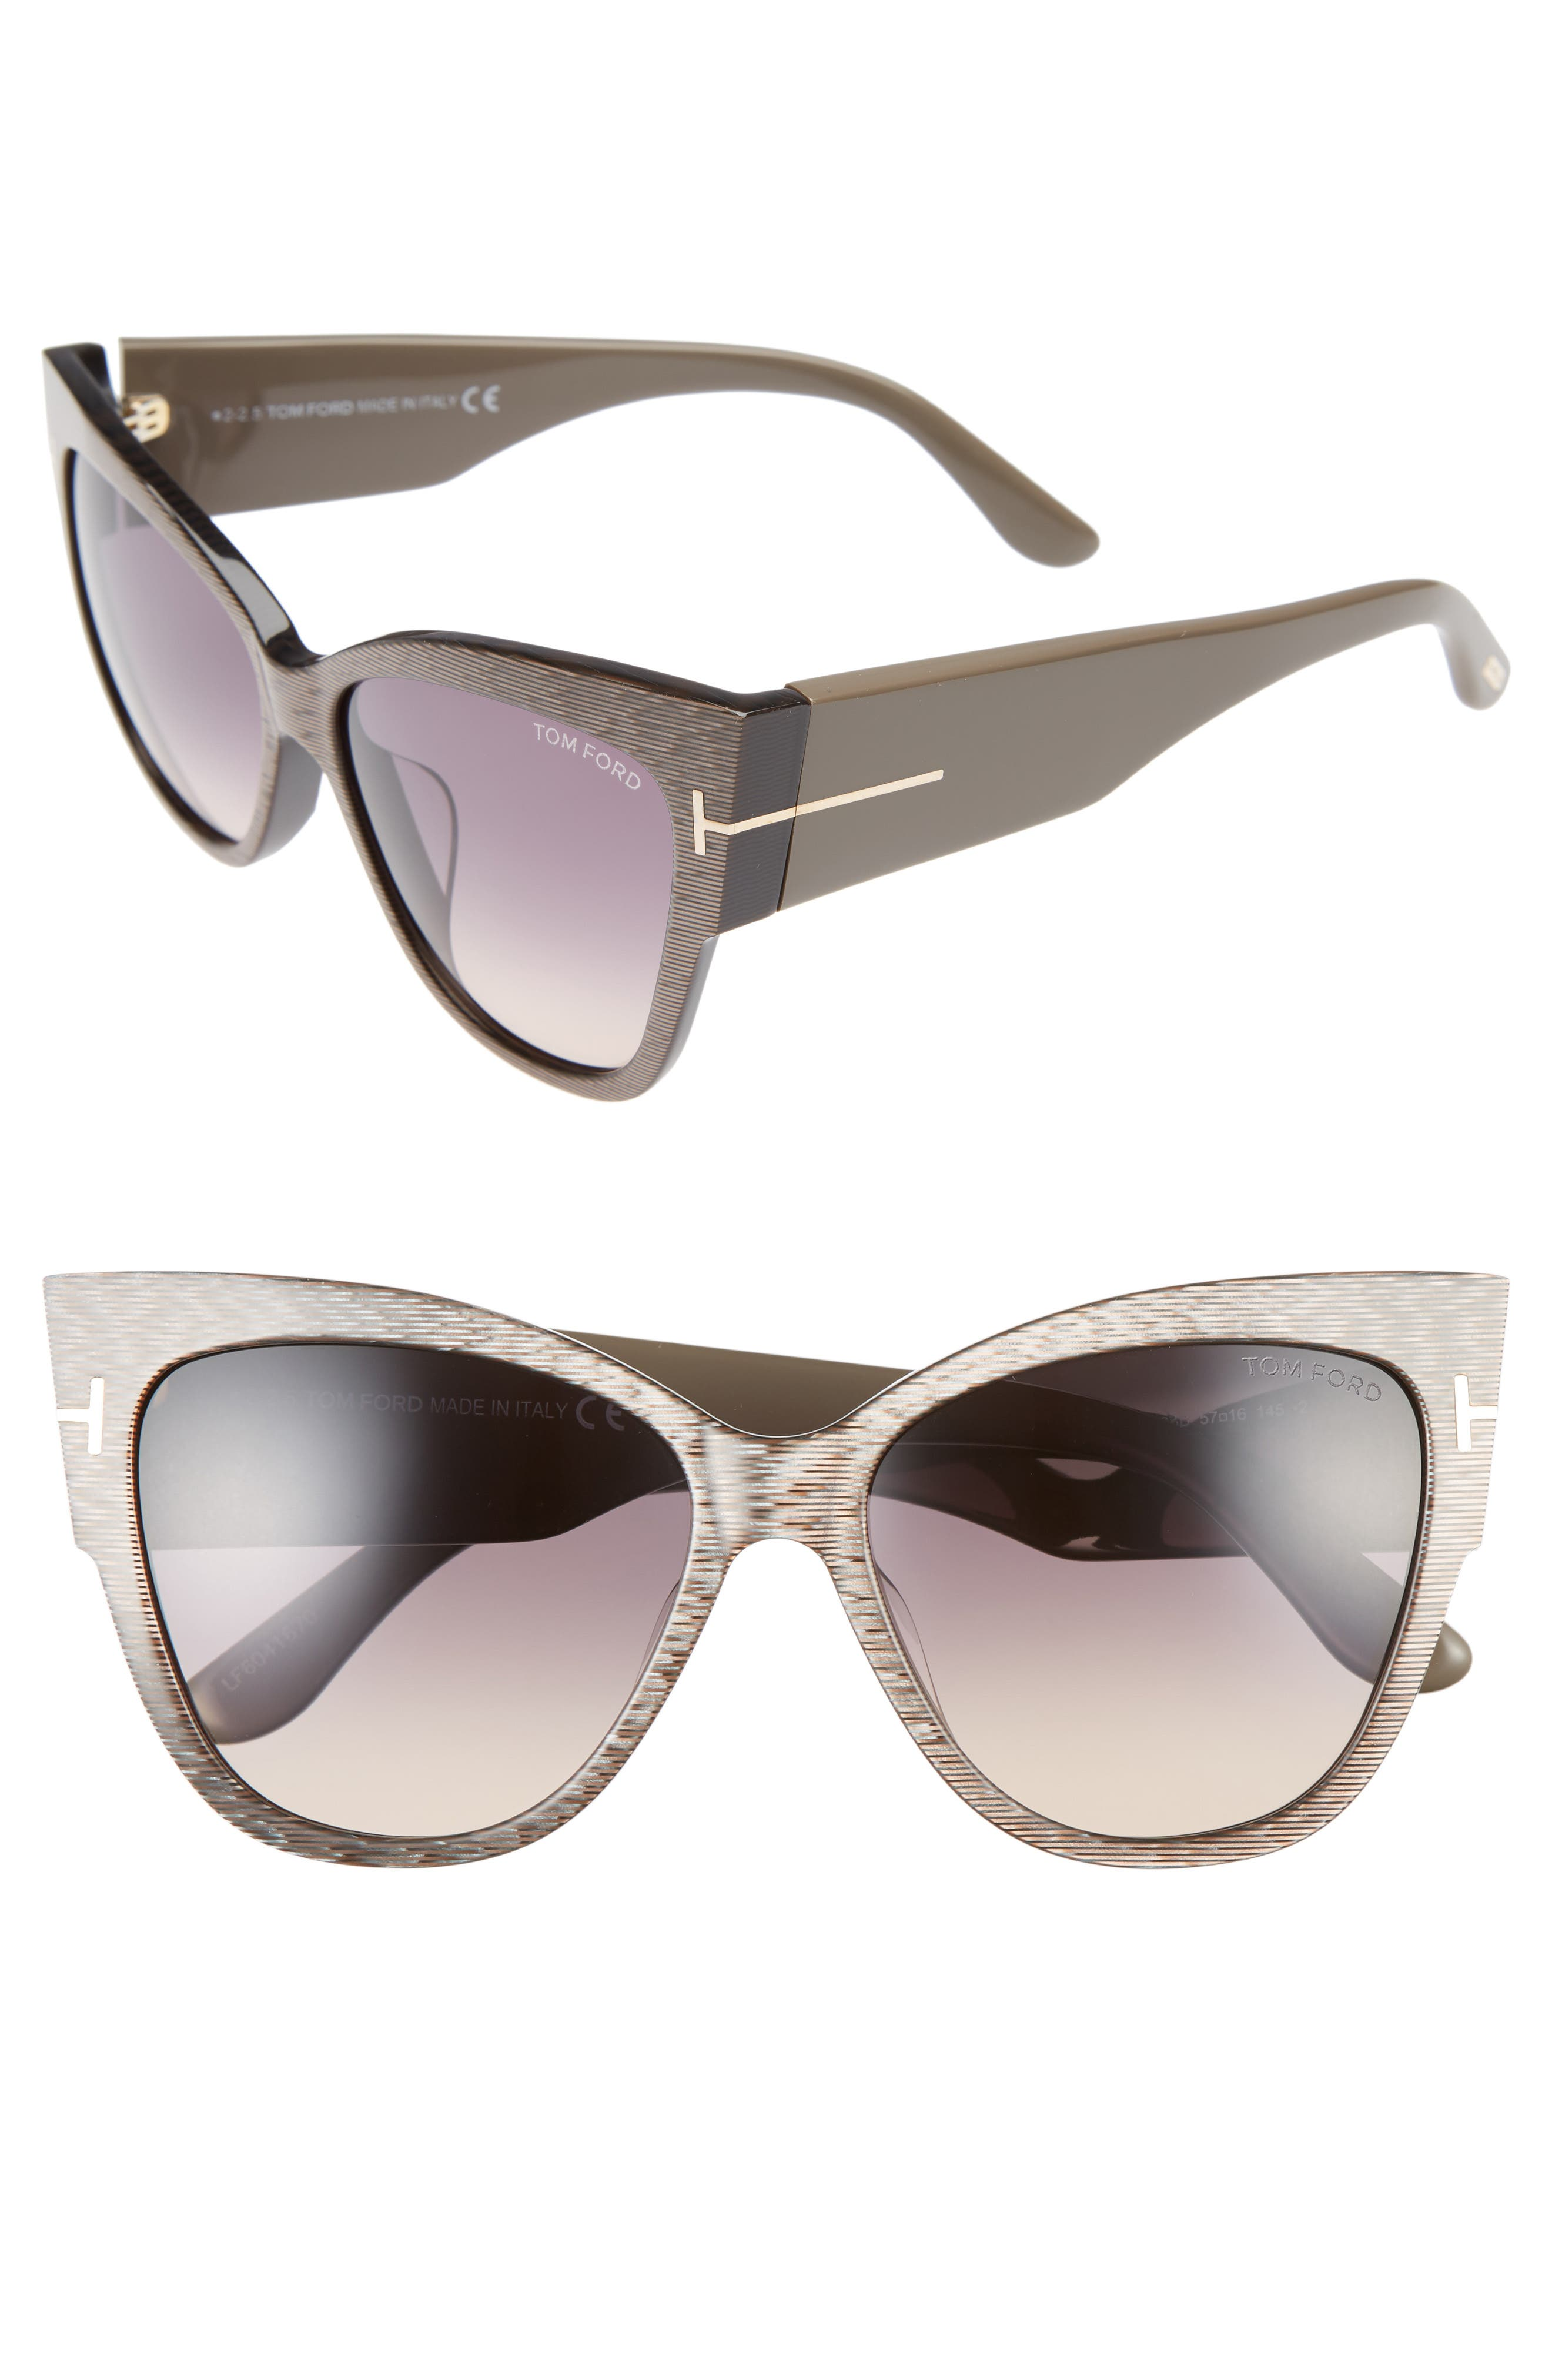 Anoushka 57mm Special Fit Butterfly Sunglasses,                             Main thumbnail 1, color,                             DOVE GREY/ GREY GRADIENT SAND